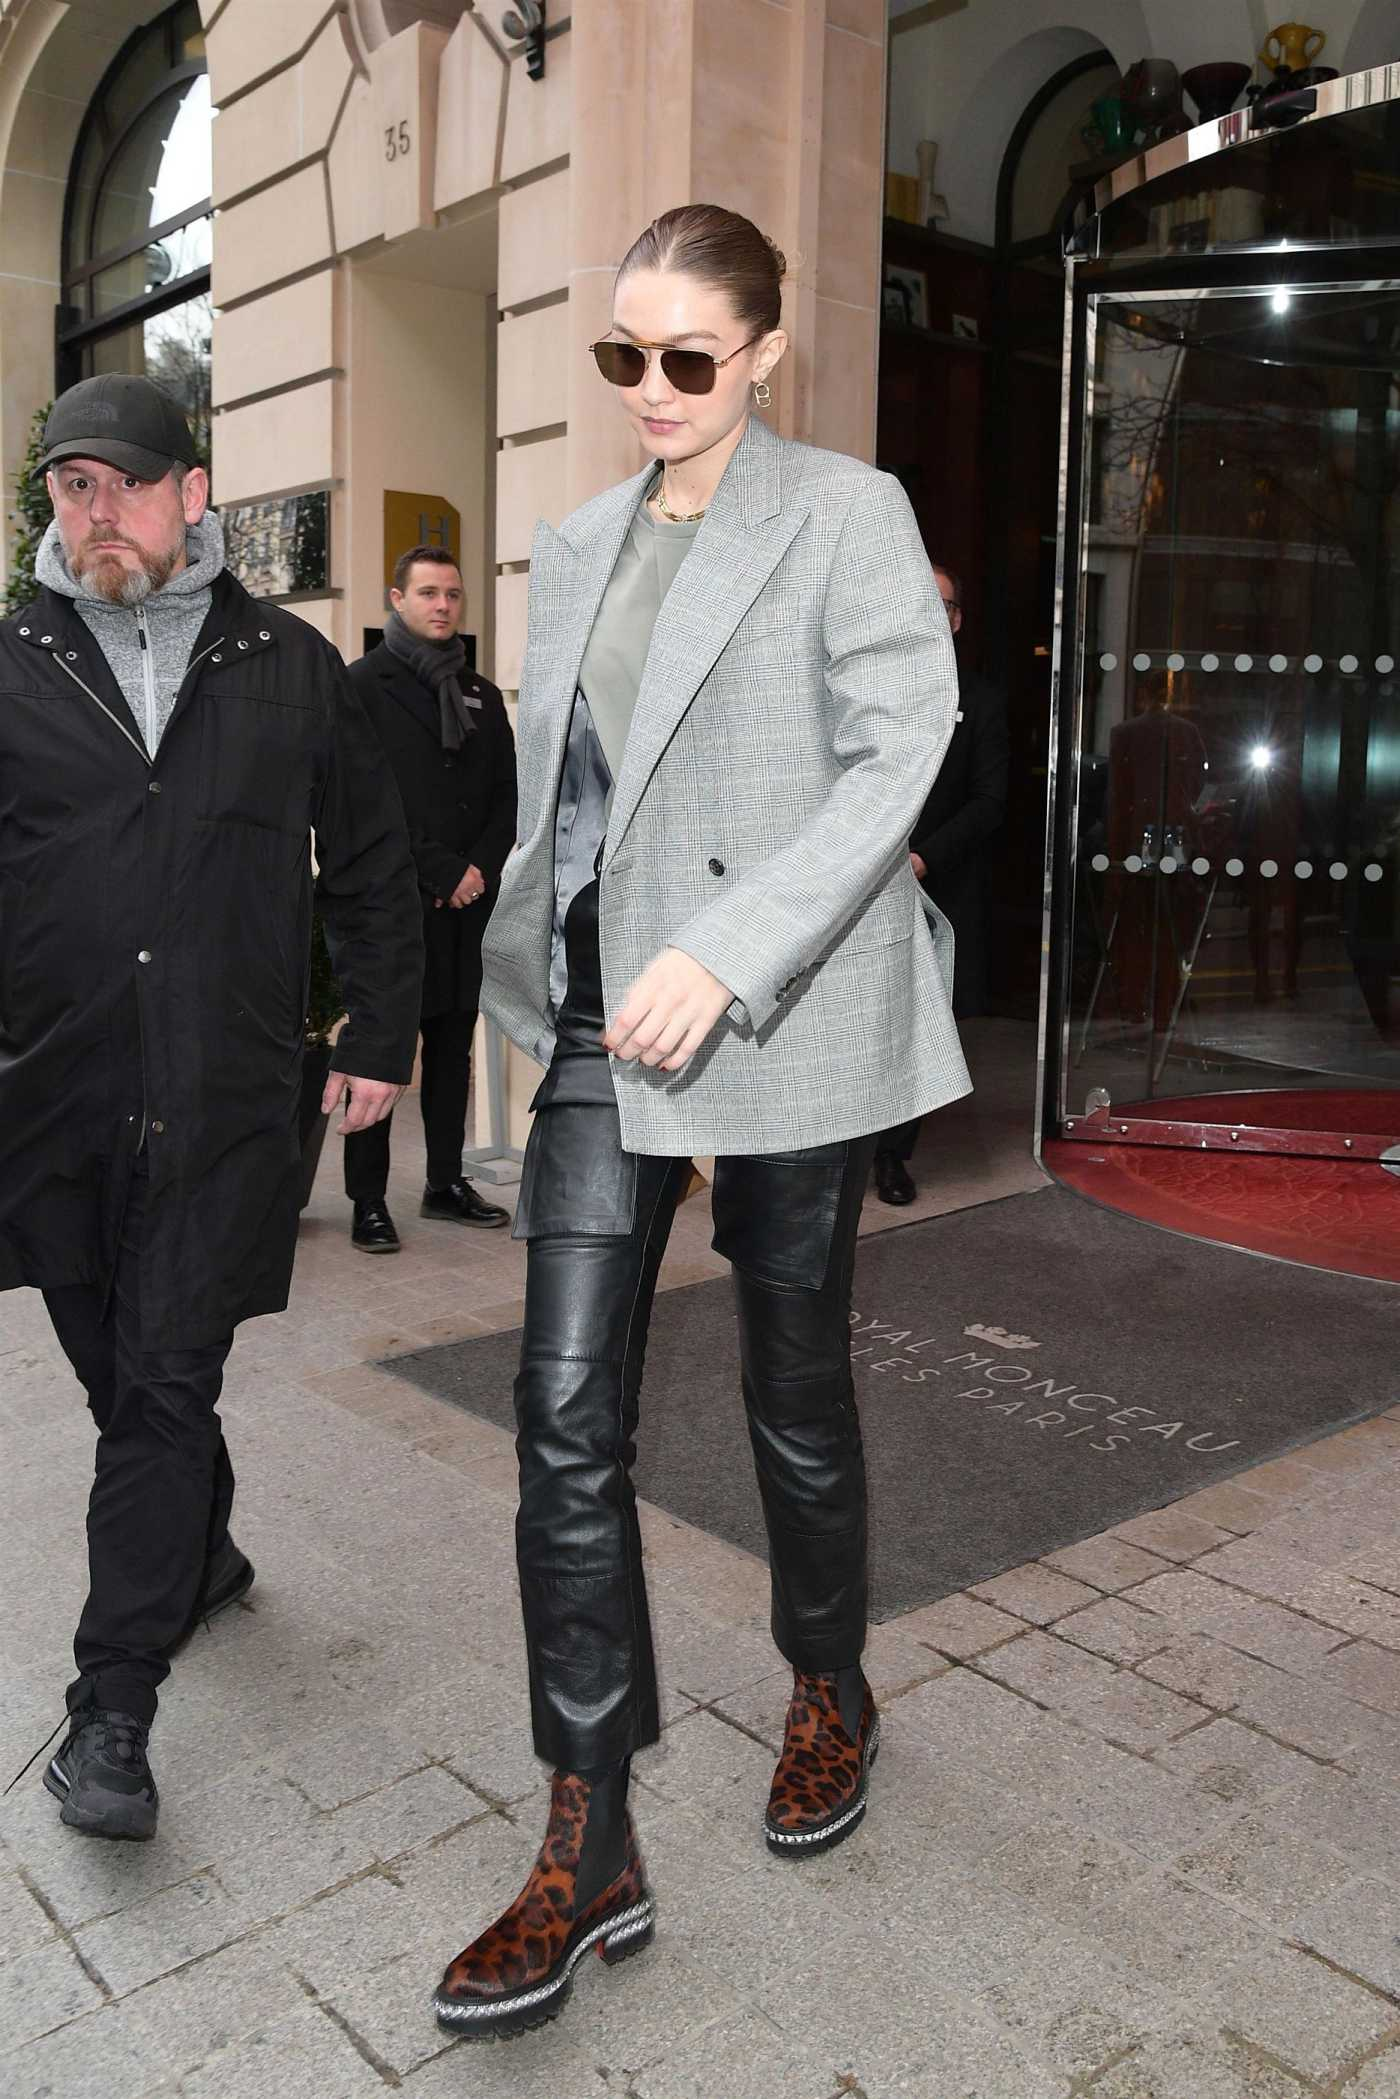 Gigi Hadid in a Gray Blazer Leaves the Le Royal Monceau Hotel in Paris 03/02/2020